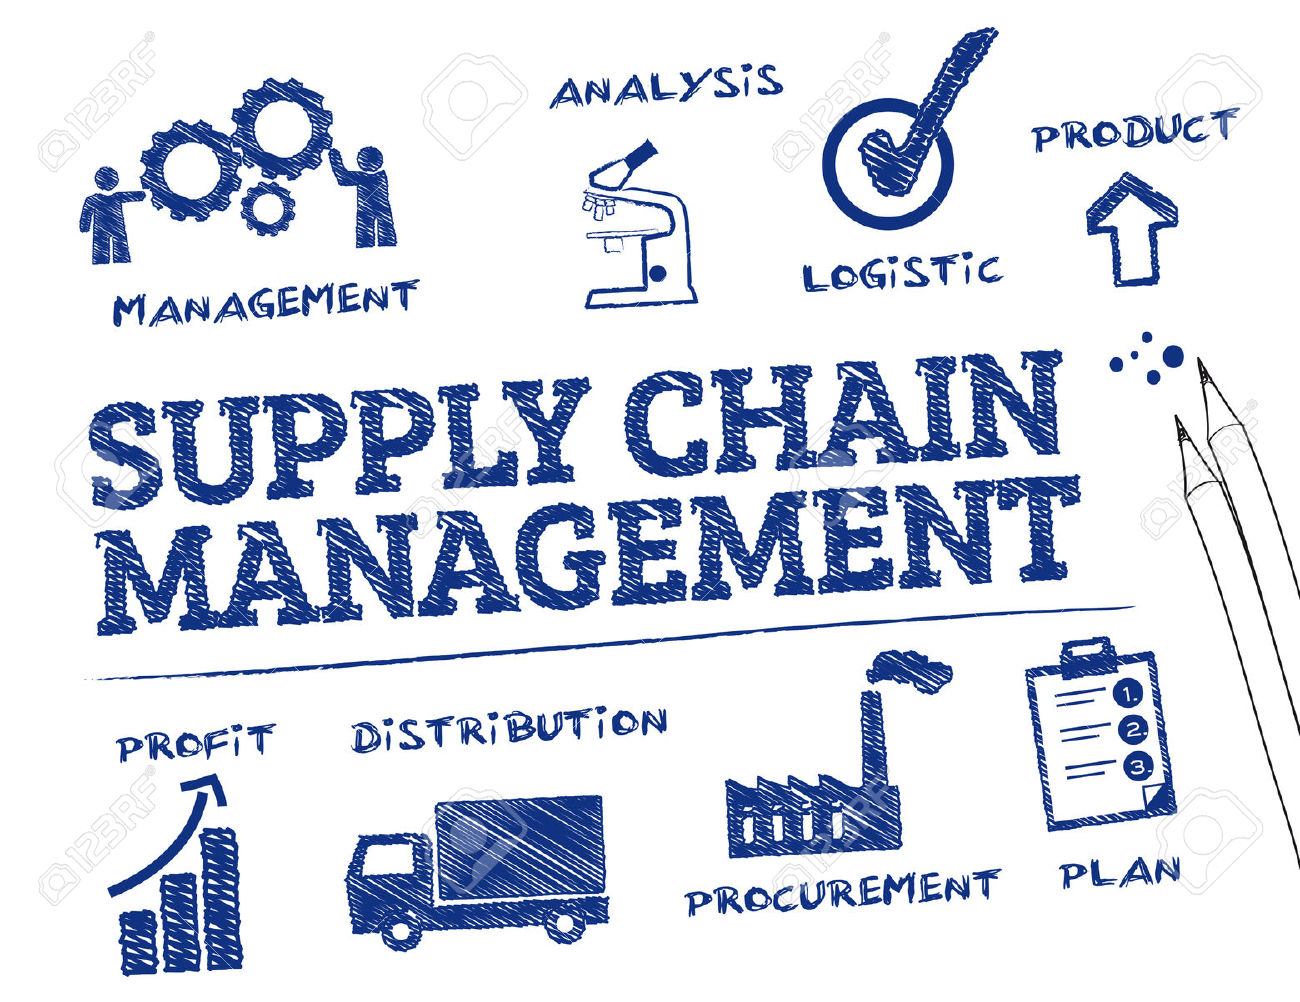 supply chain reduction The quote order lead time (olt quote) is the agreed time between the order entry date and the supplier's committed deliver date of goods as stipulated in a supply chain contract [7] the confirmed order lead time (olt confirmed ) represents the time between the order entry date and the by the supplier confirmed delivery date of goods.